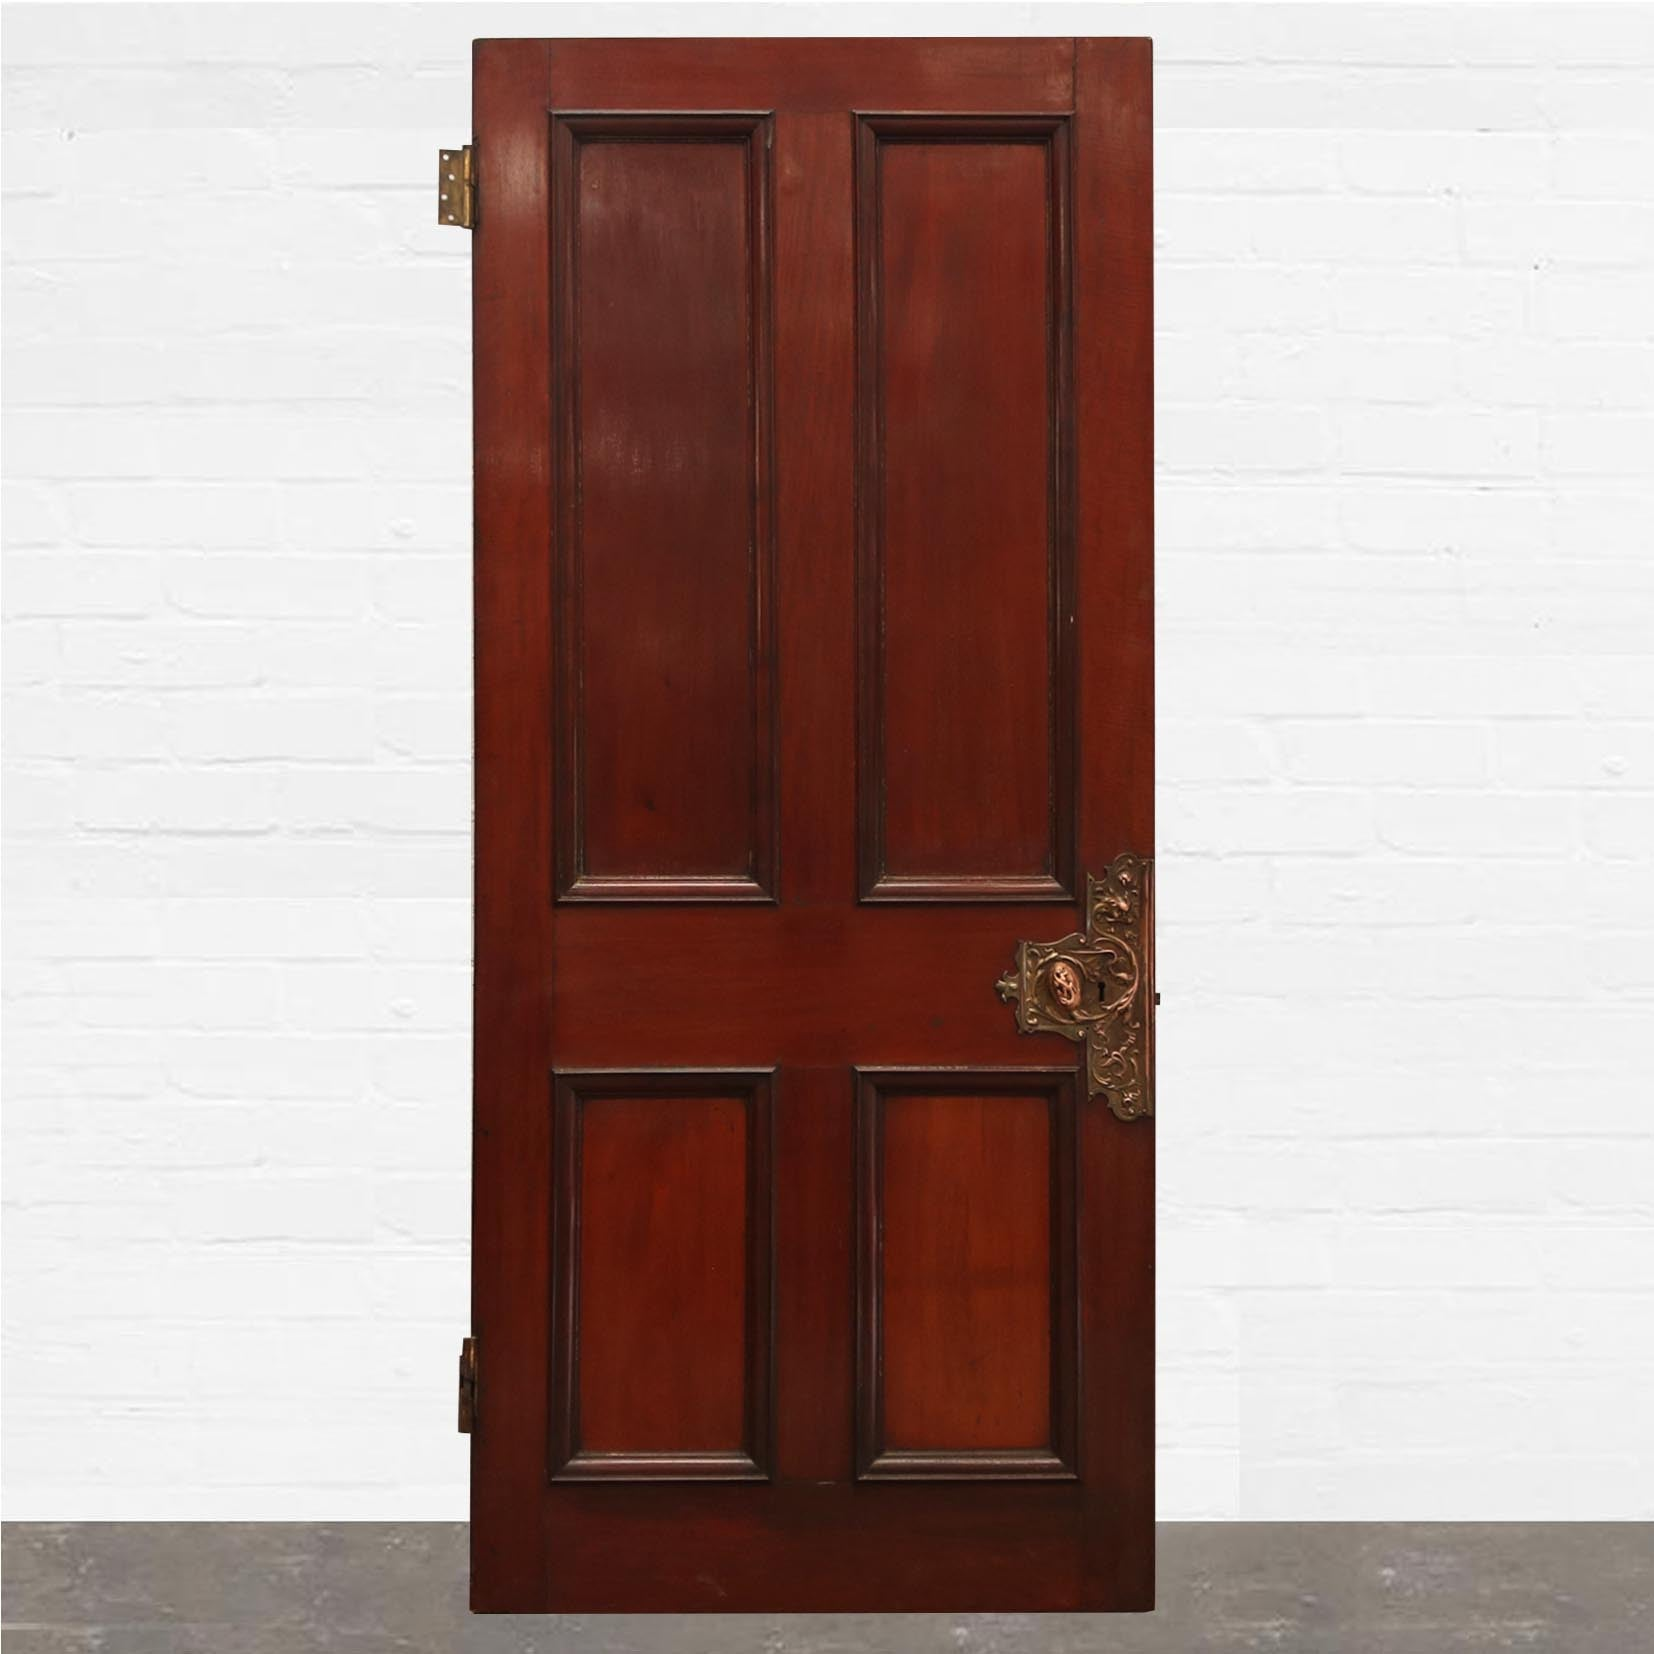 Georgian Flame Mahogany Panelled Door -209cm x 91cm - The Architectural Forum